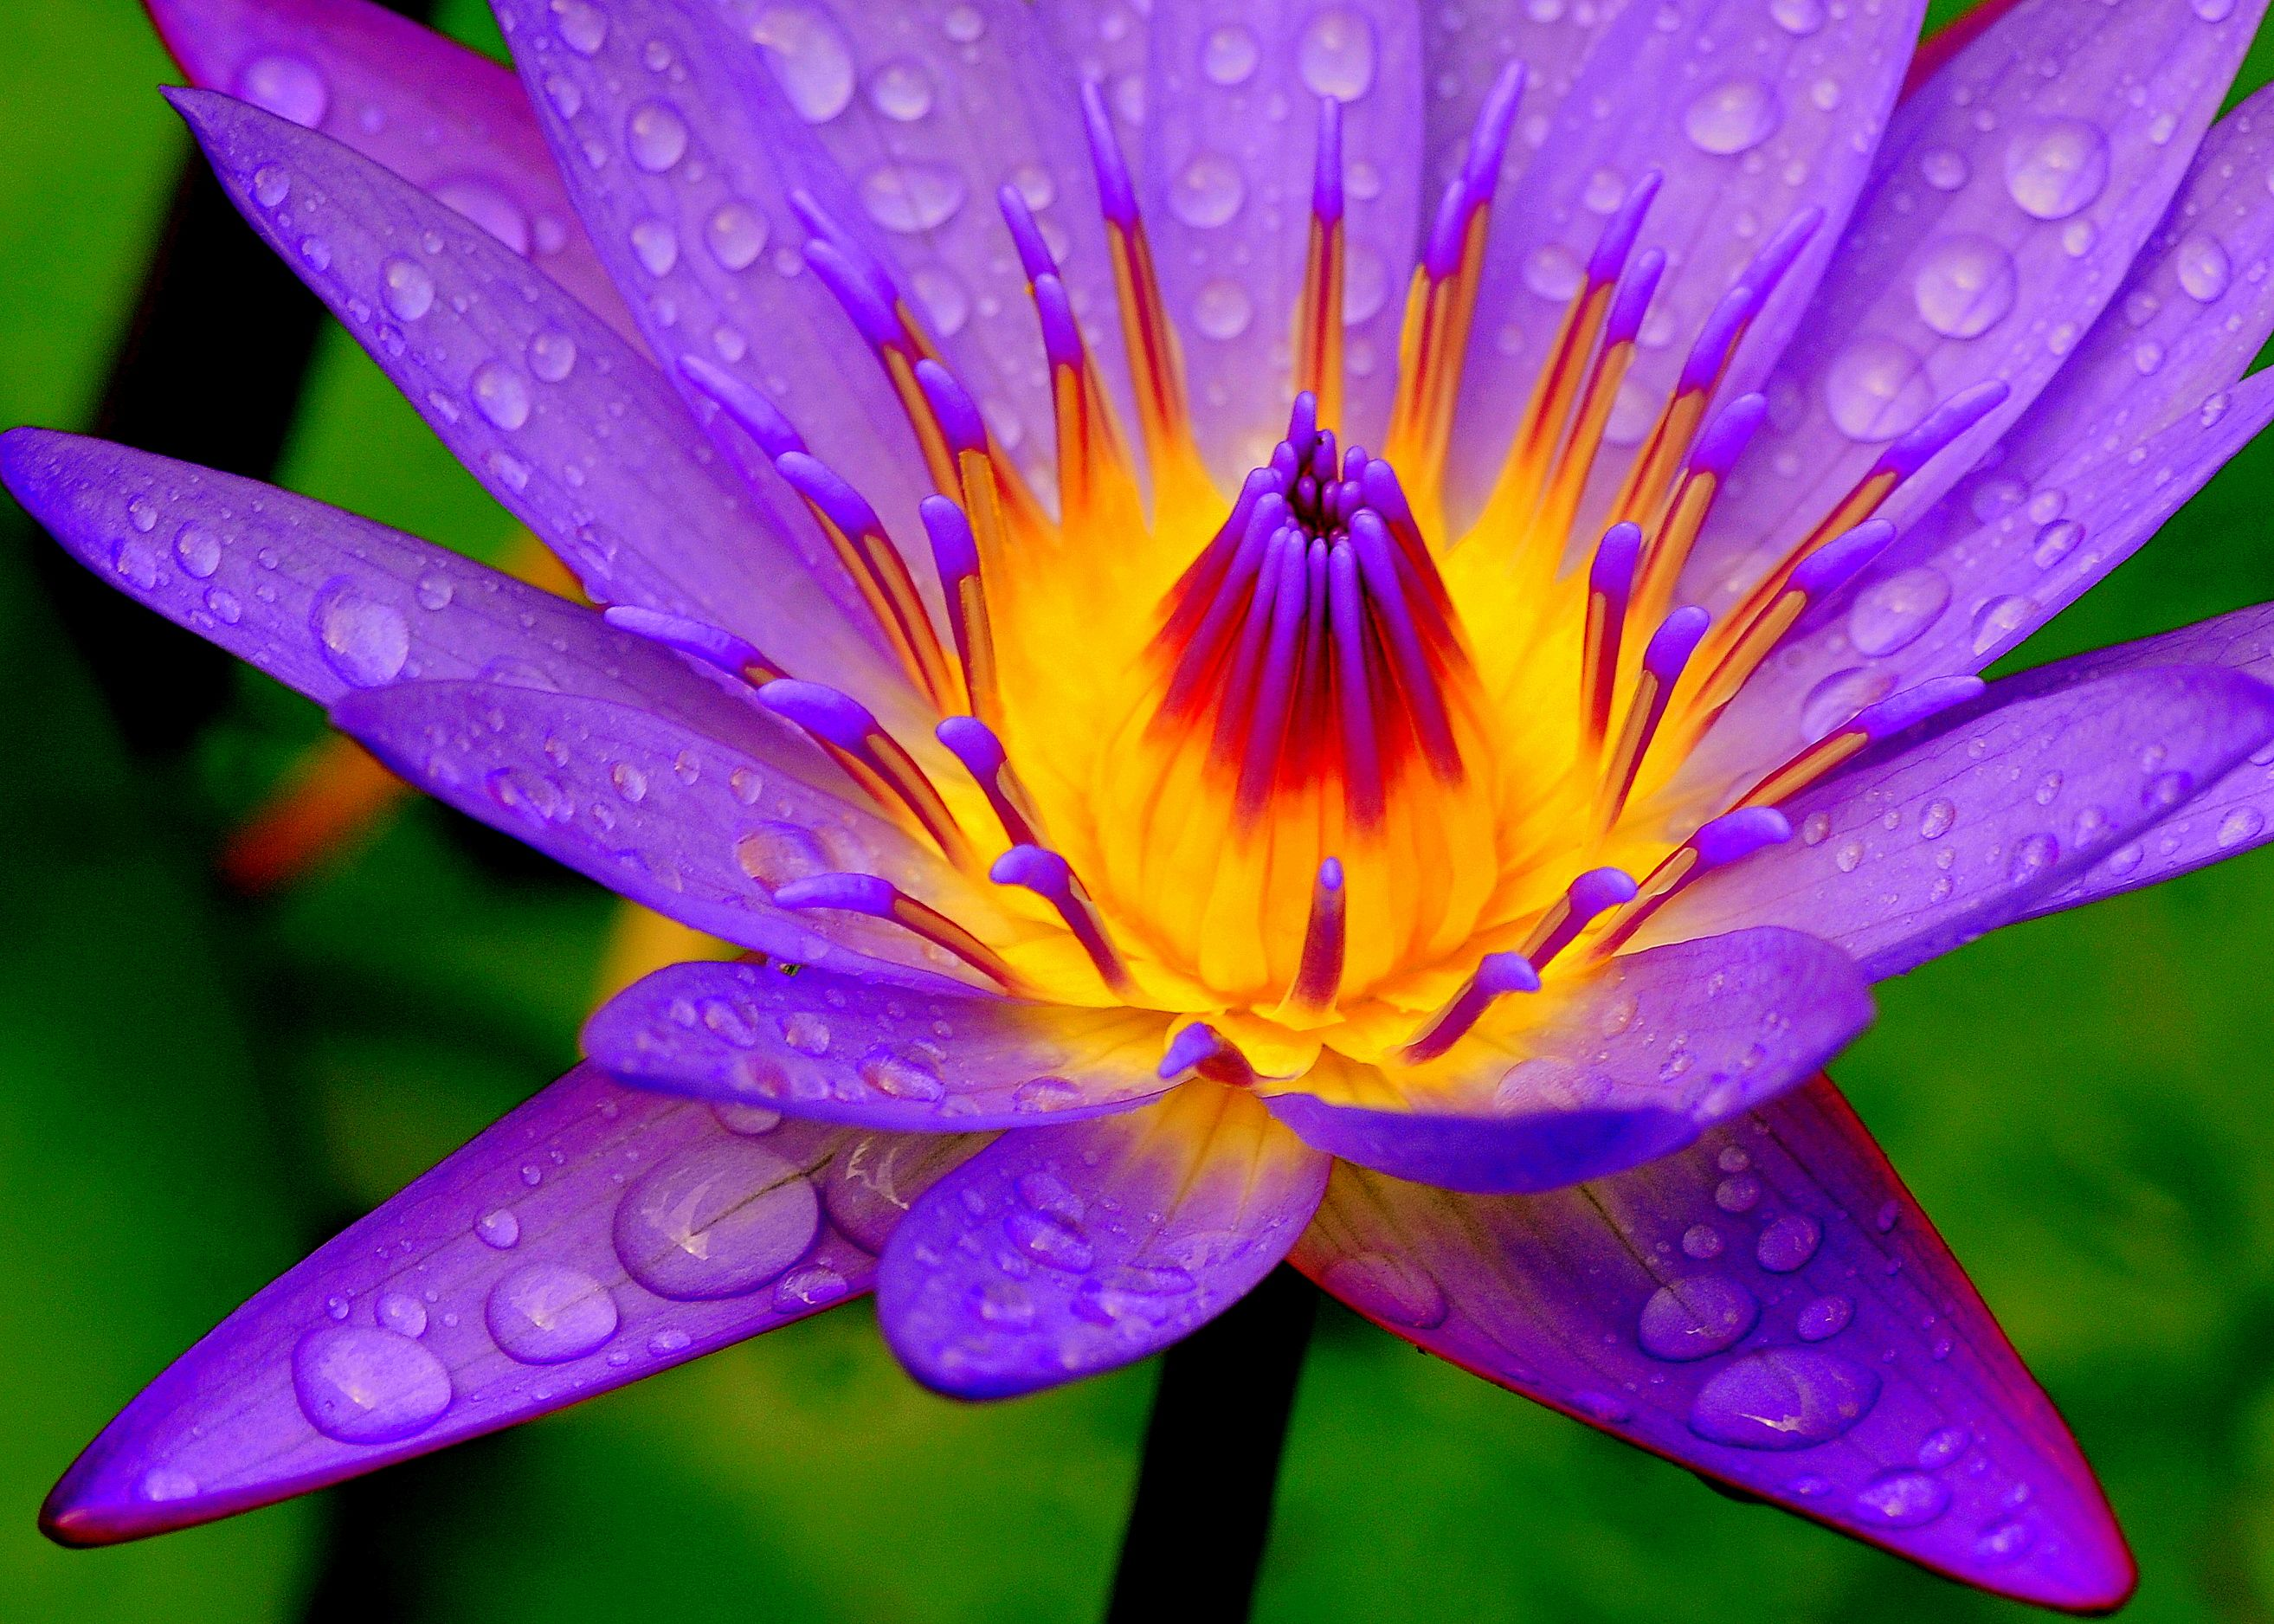 Water lily water lilies flora and beautiful flowers water lily best flowersmost beautiful izmirmasajfo Images